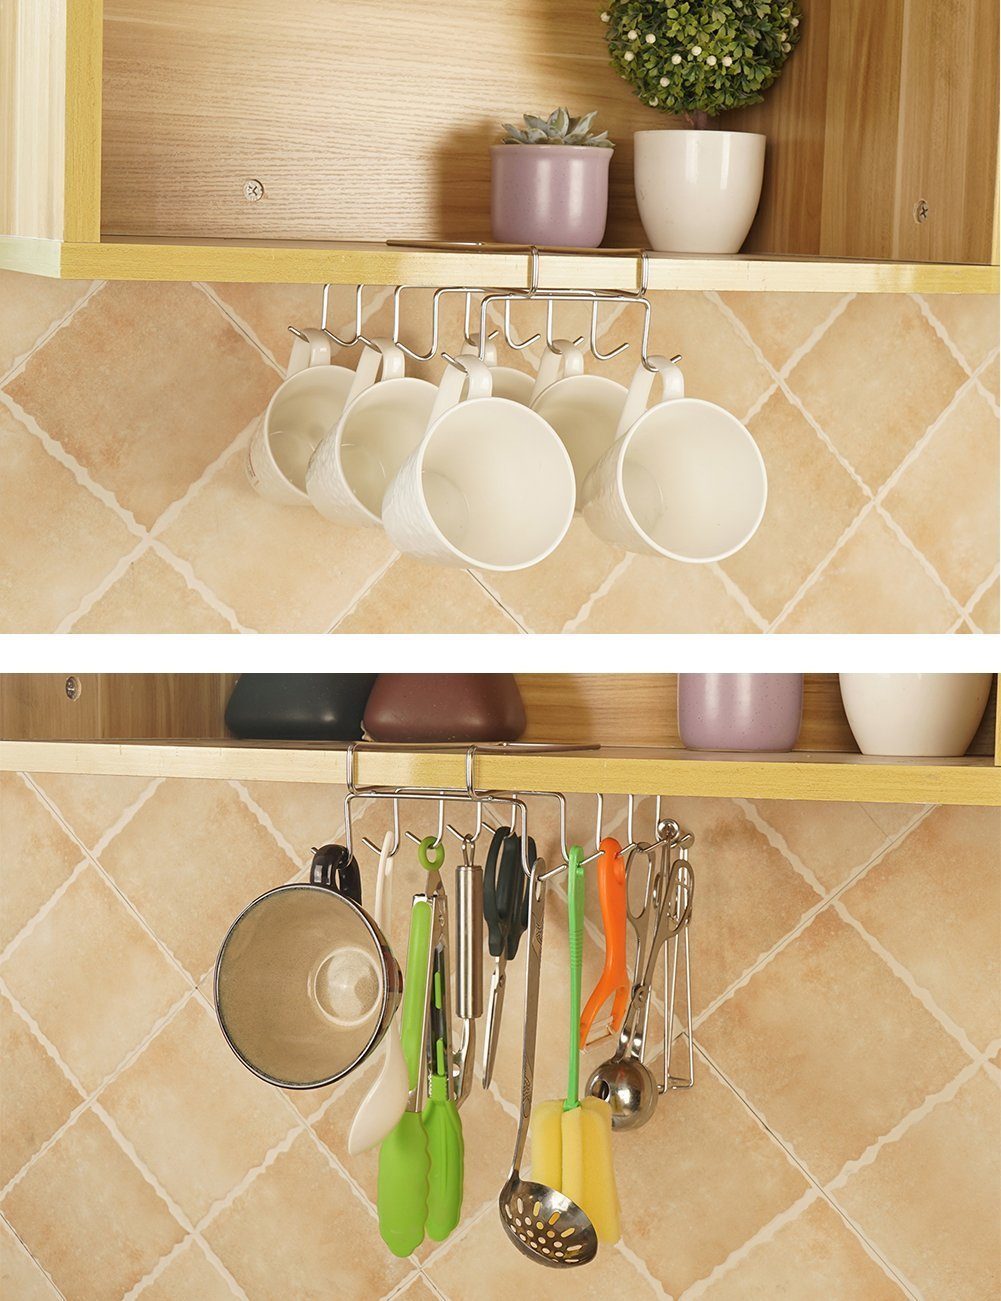 "Bafvt Coffee Mug Holder - 304 Stainless Steel Cup Rack Under Cabinet, 10Hooks, Fit for the Cabinet 0.8"" or Less"